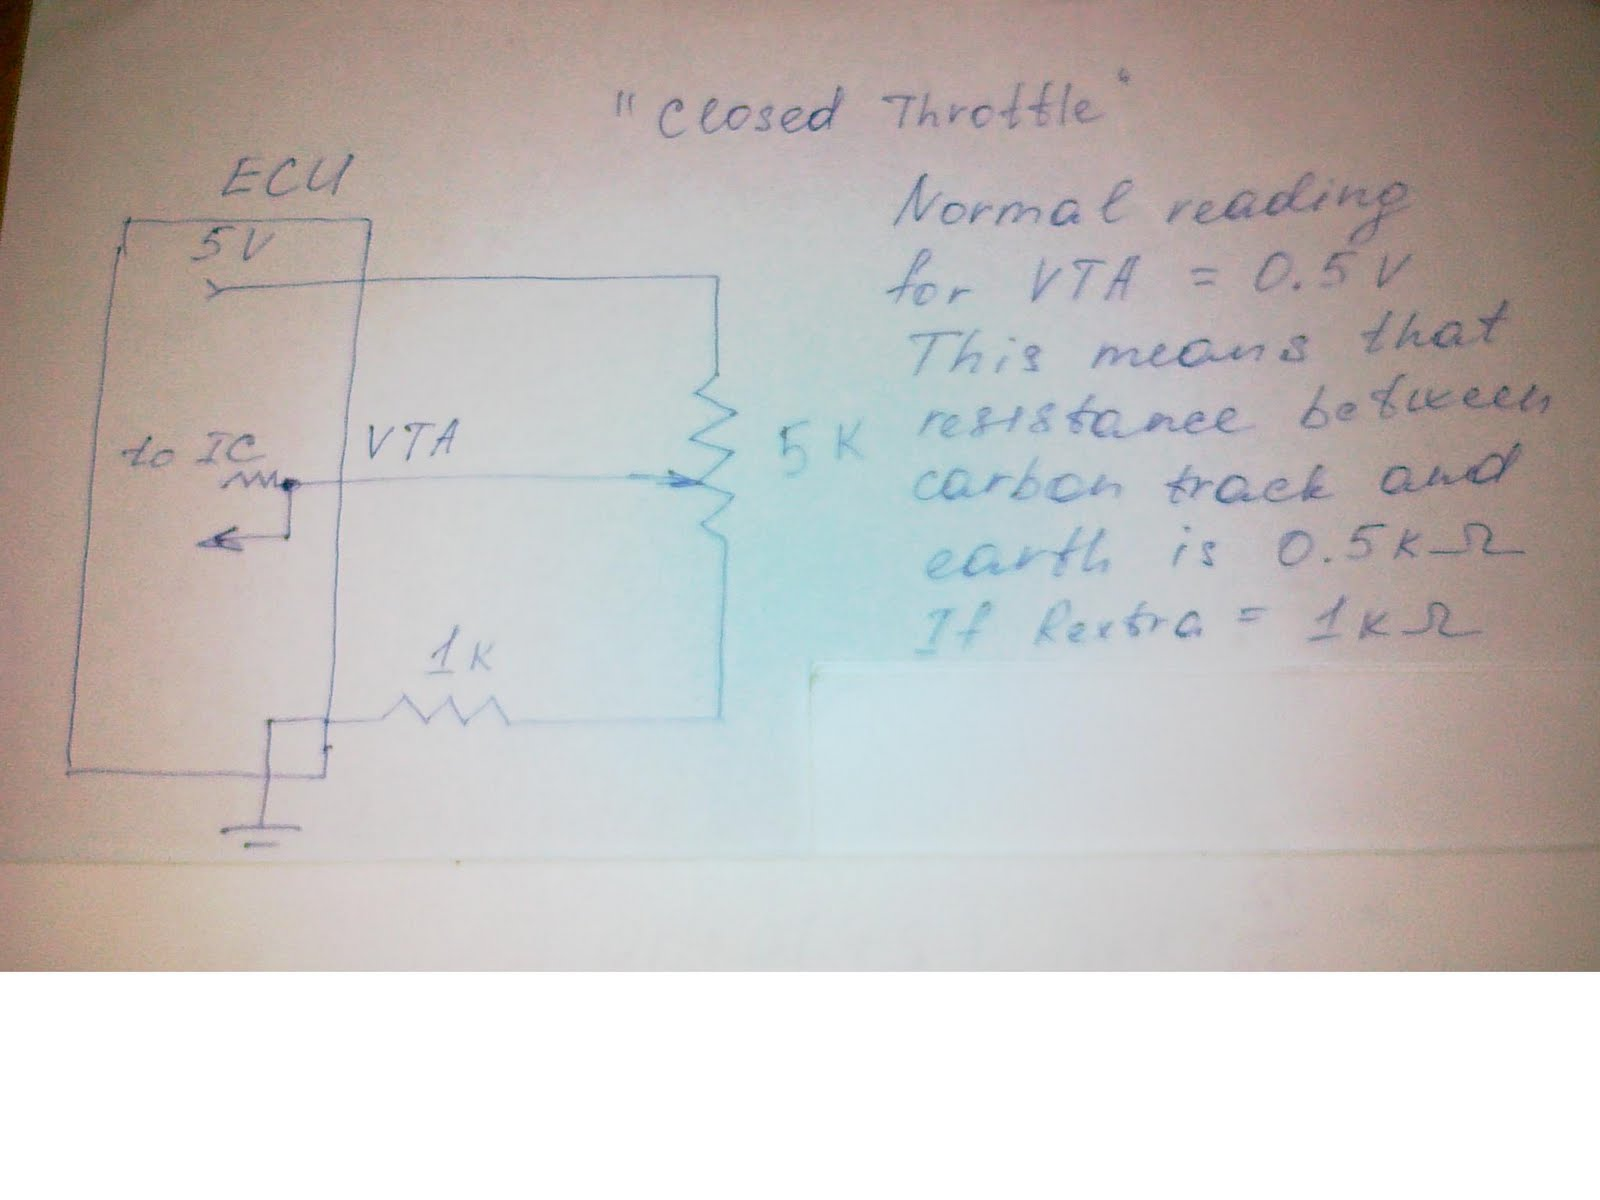 TTEC4826: WS3A Oscilloscope pattern to capture